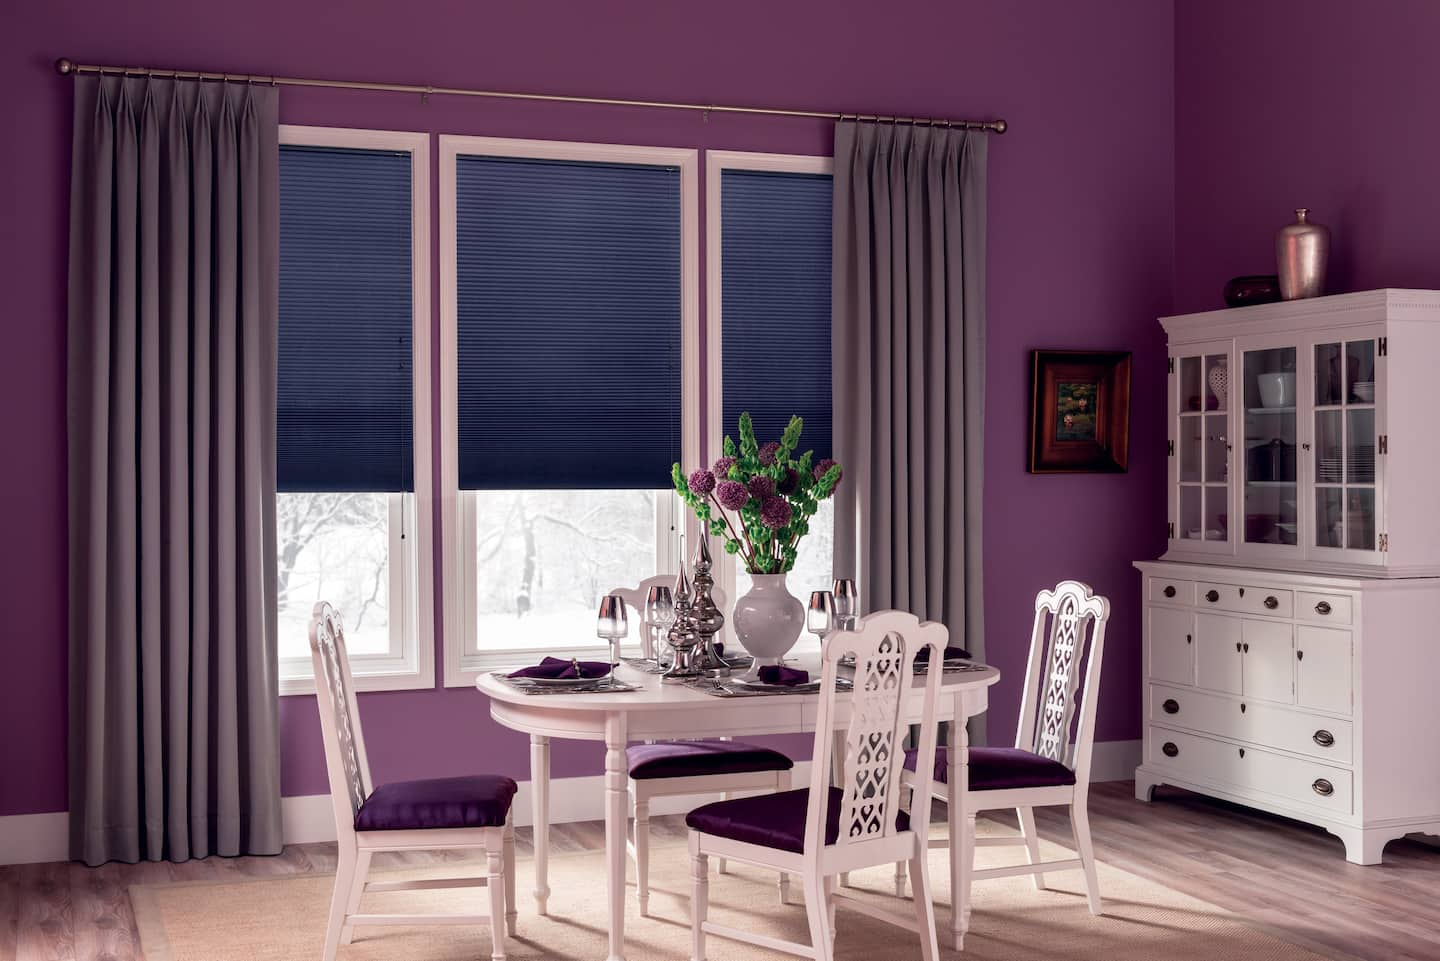 Ideas For Dining Room Curtains Part - 17: 15 Ideas For Dining Room Curtains